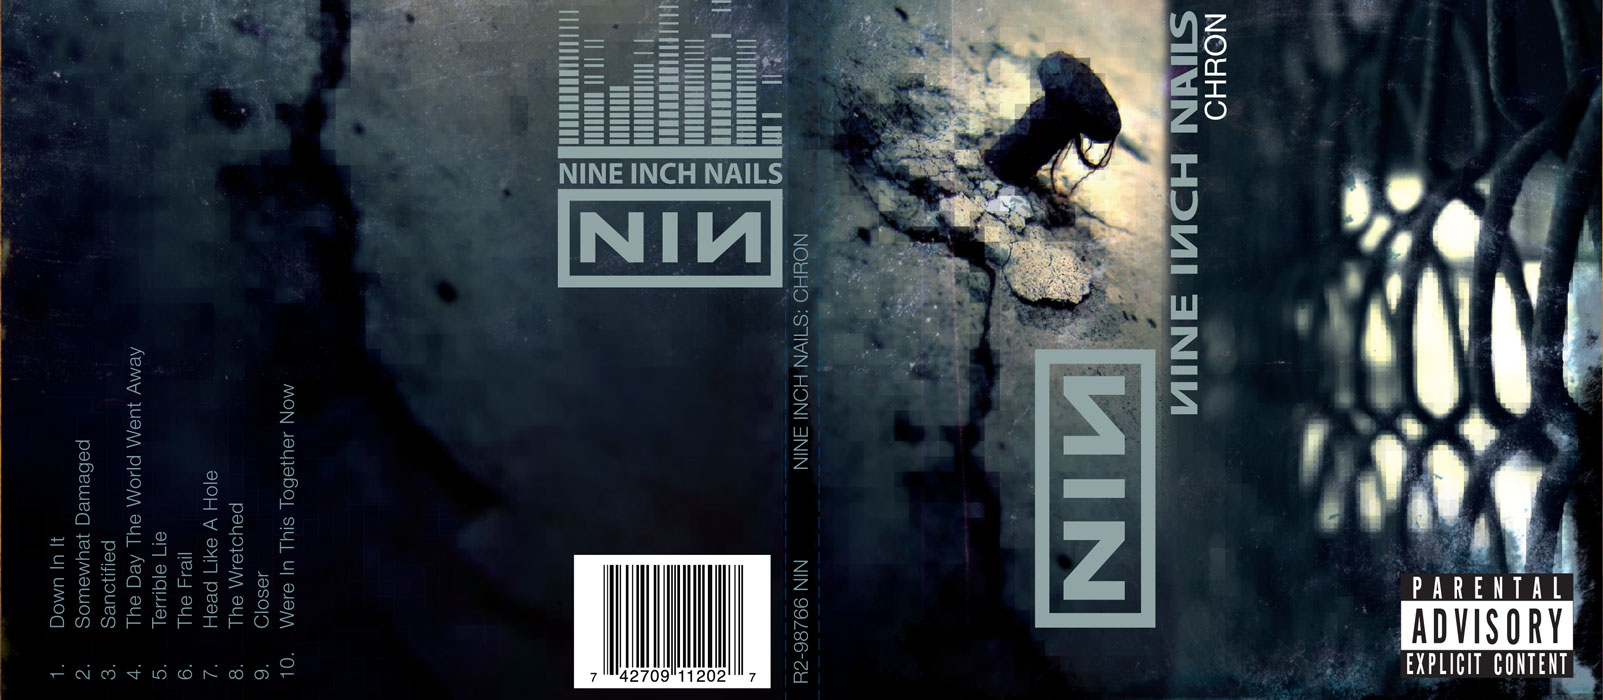 TAFE - Nine Inch Nails cover 2 by beanarts on DeviantArt